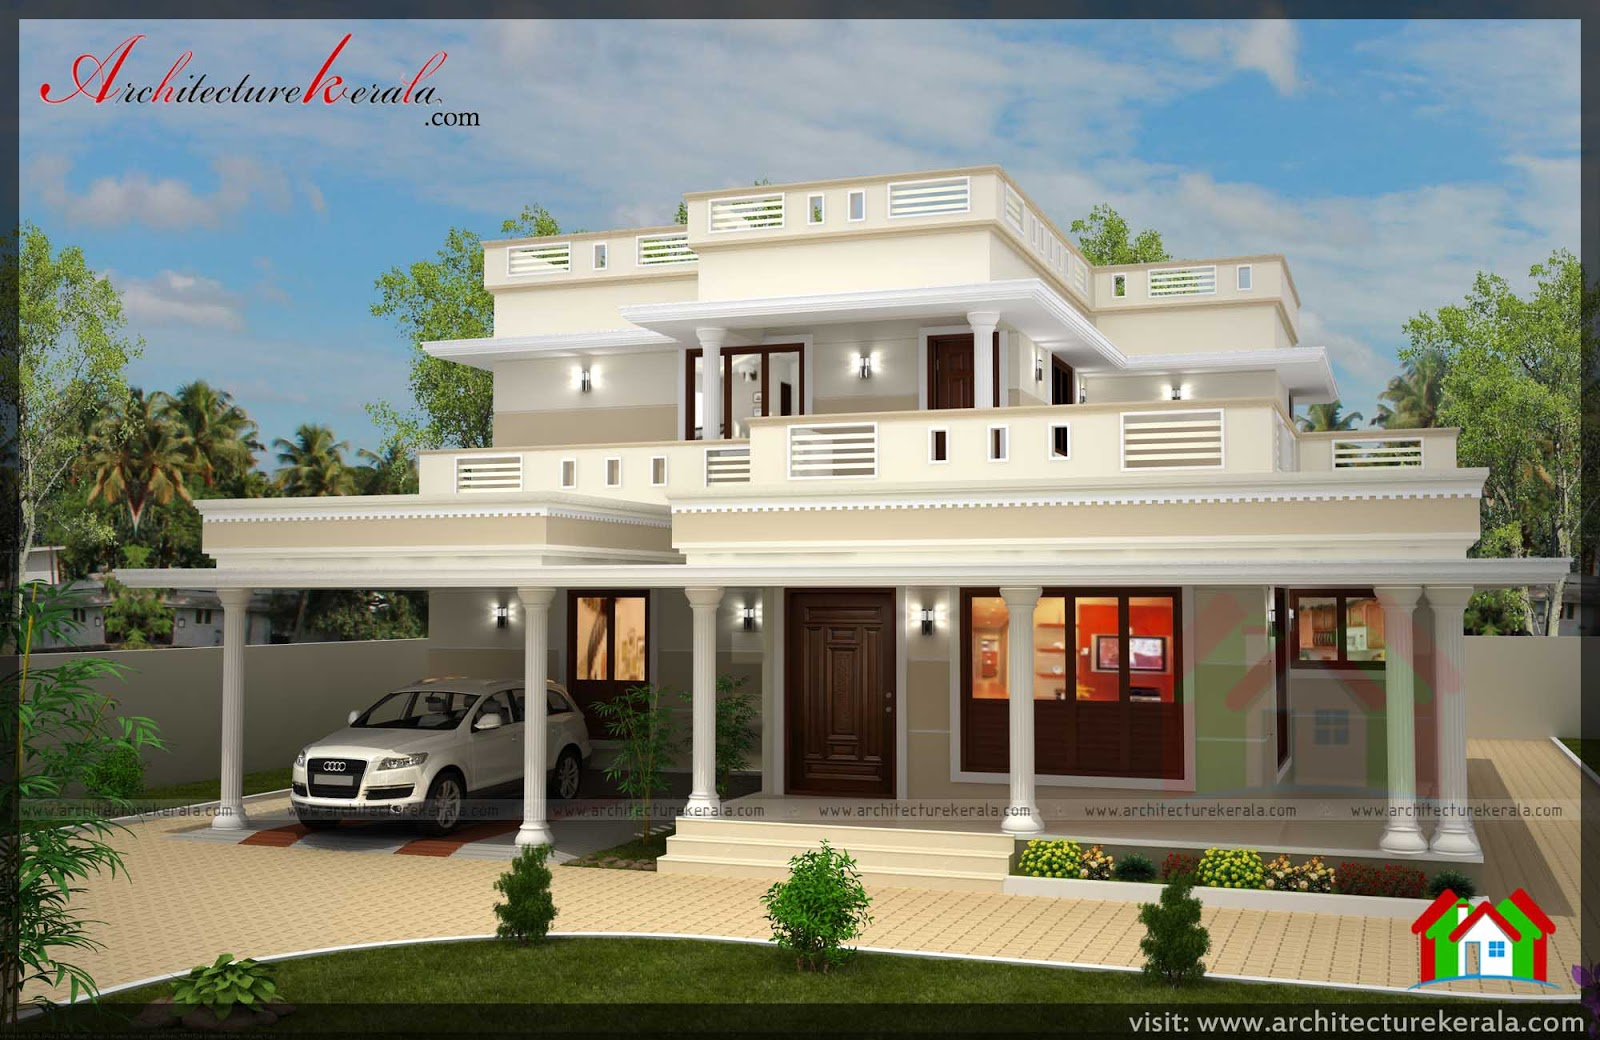 4 bed house plan with pooja room architecture kerala for Home plans and designs